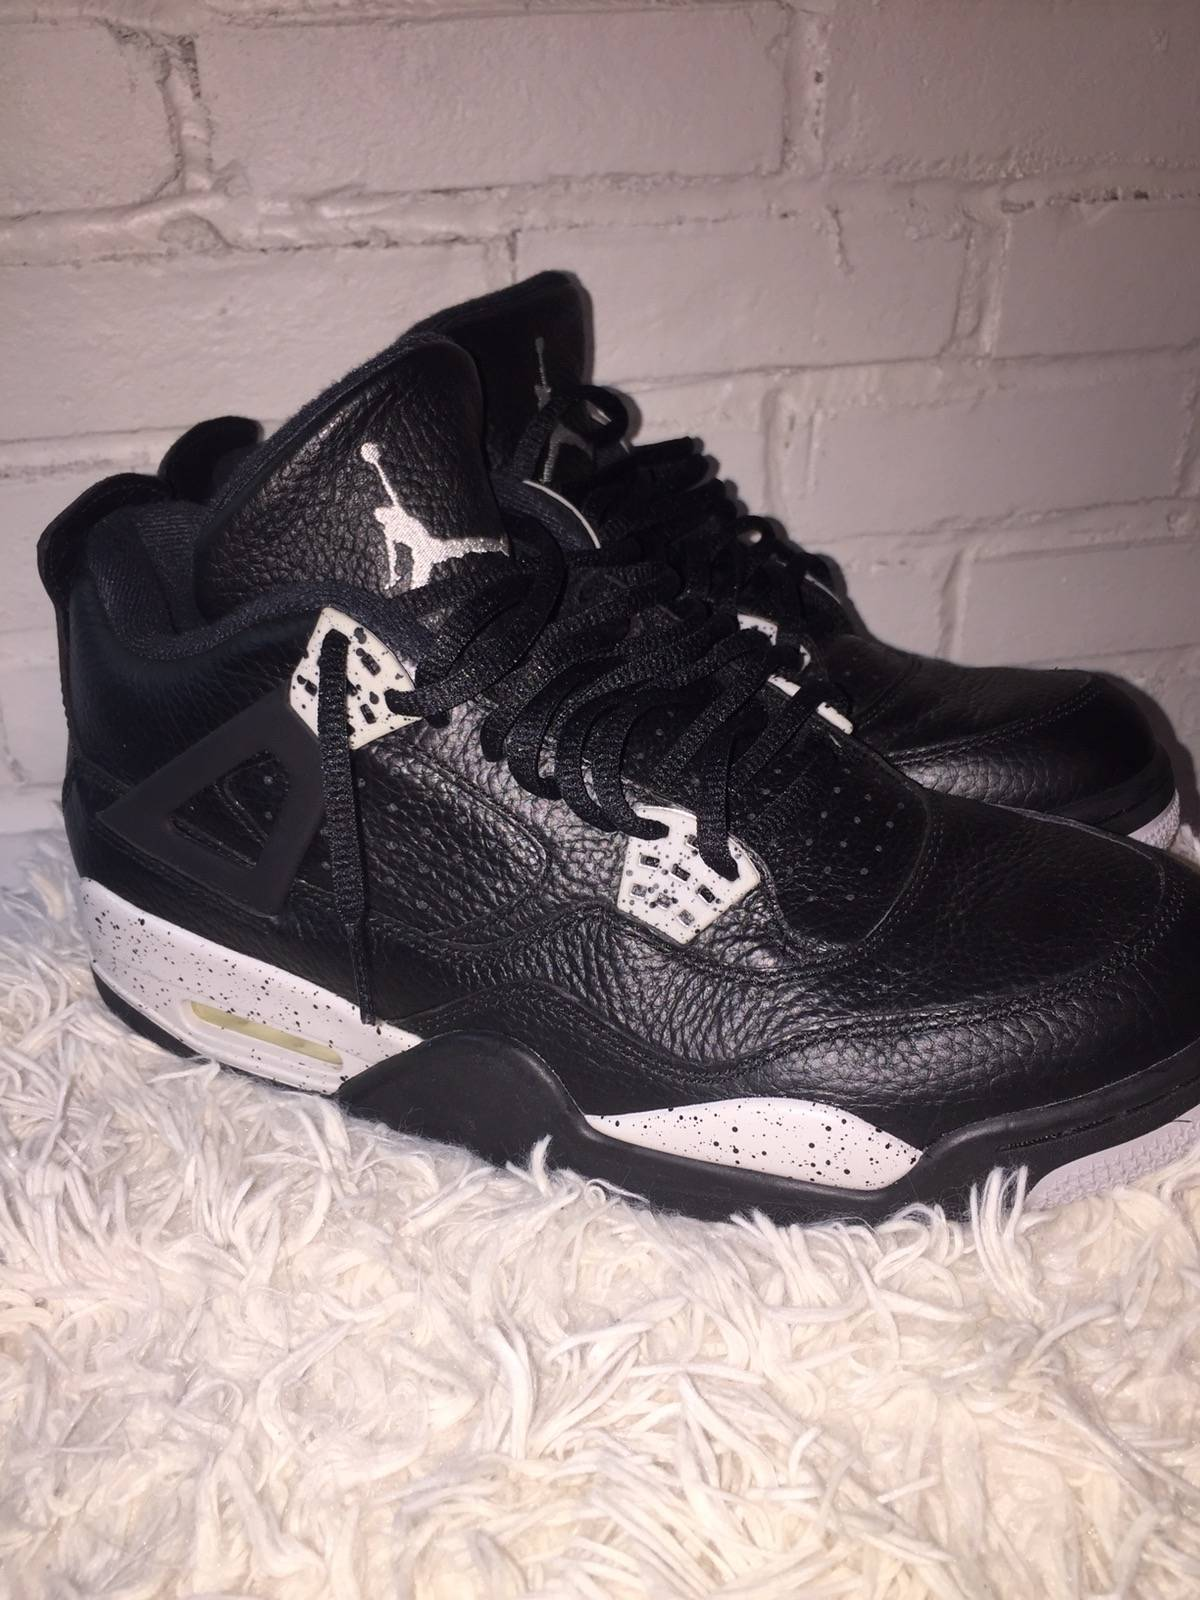 d709409a8cab Jordan Brand Oreo Retro 4s Size 10 - Low-Top Sneakers for Sale - Grailed